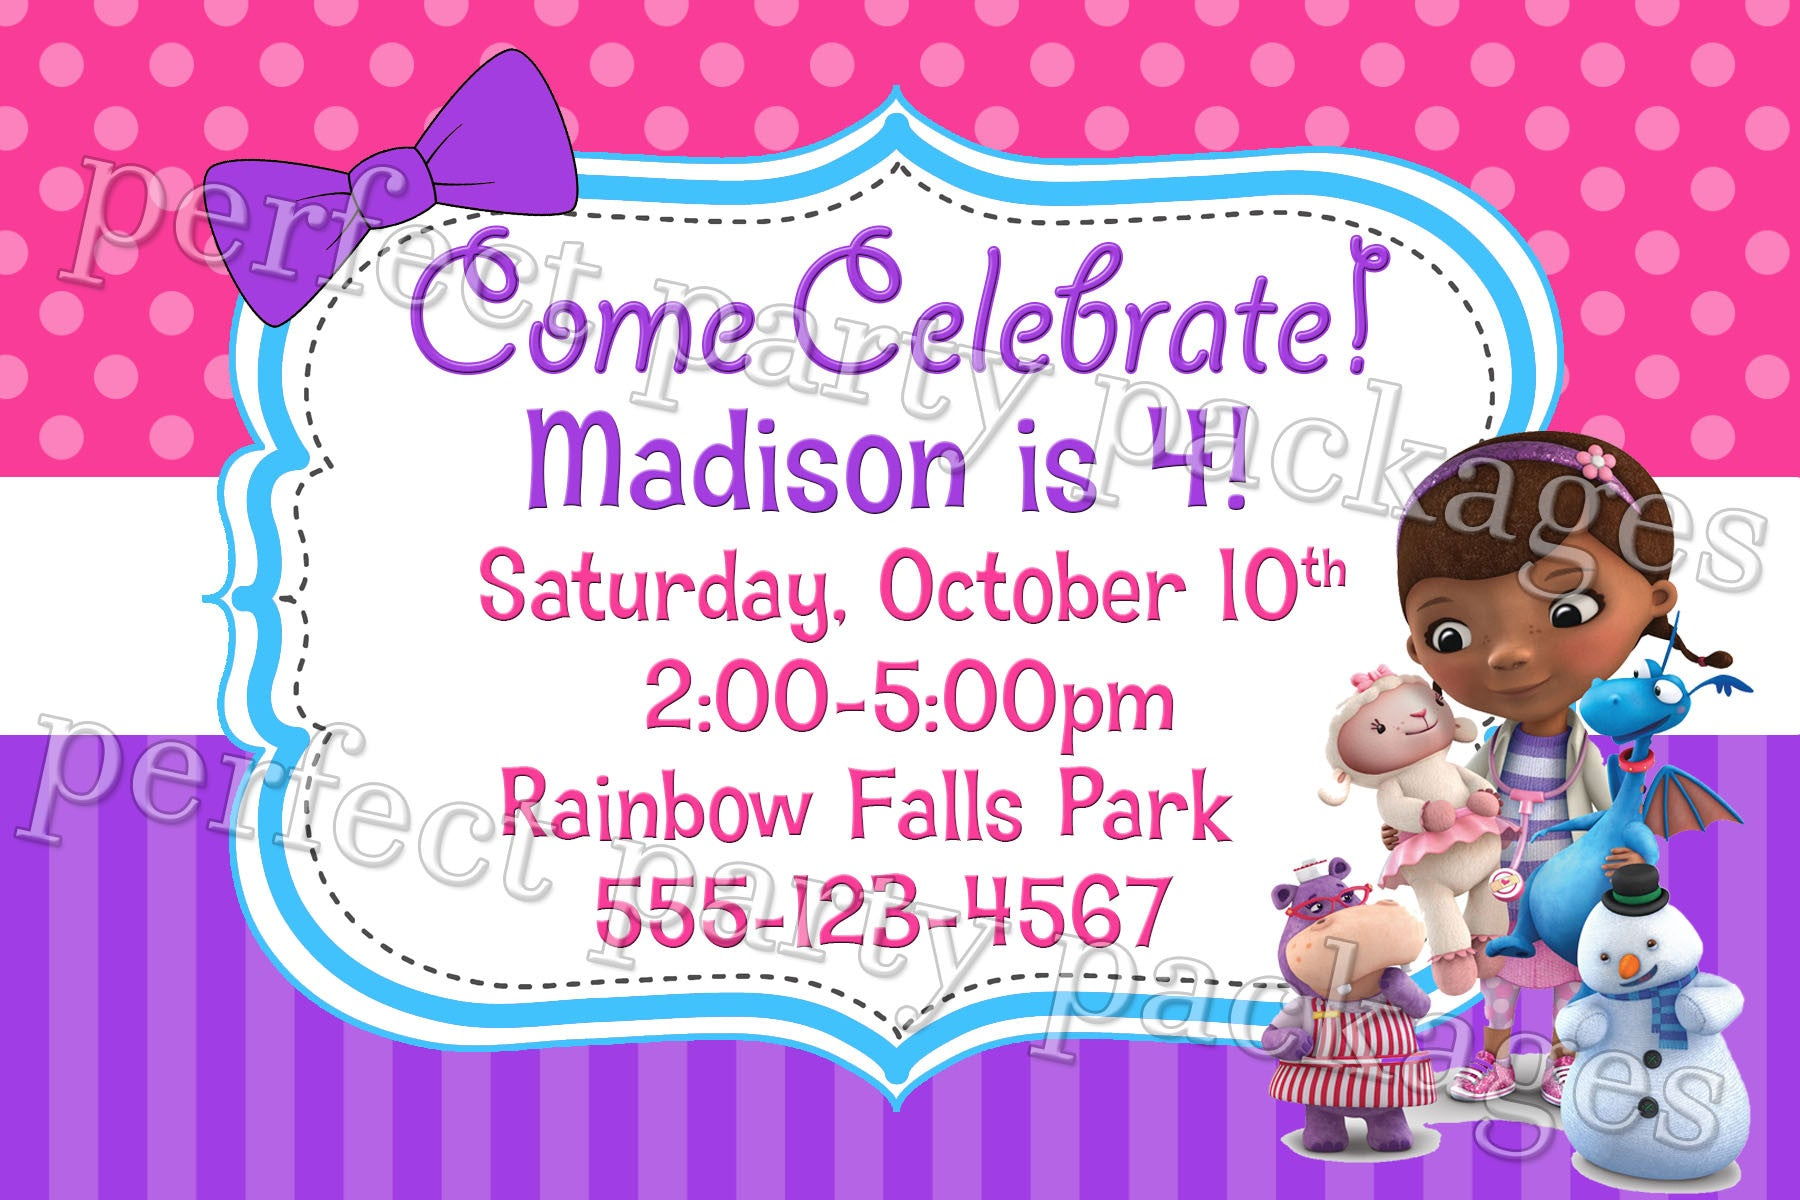 Doc mcstuffins birthday invitation digital download twistin doc mcstuffins birthday invitation filmwisefo